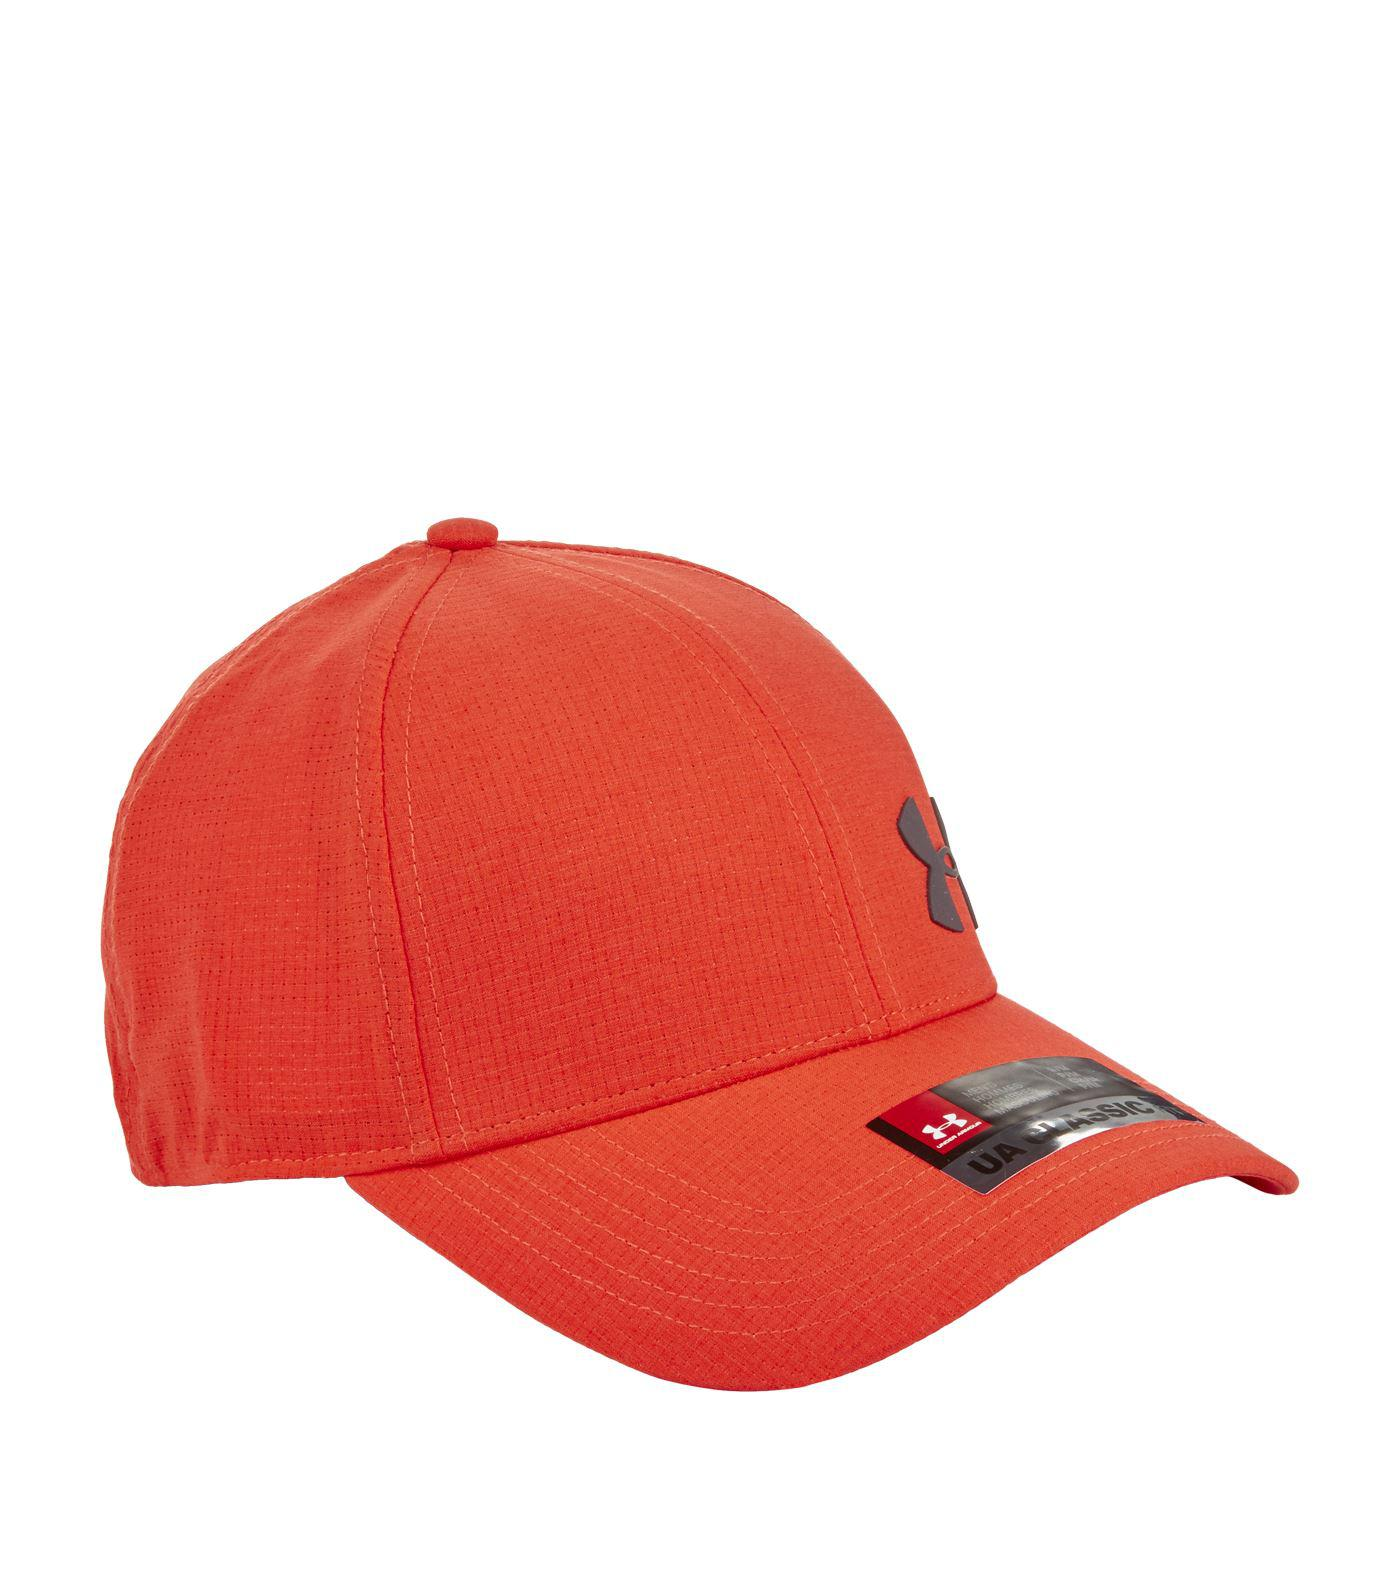 ebbf8e6d4bf Under Armour Armourvent Training Cap in Red for Men - Lyst